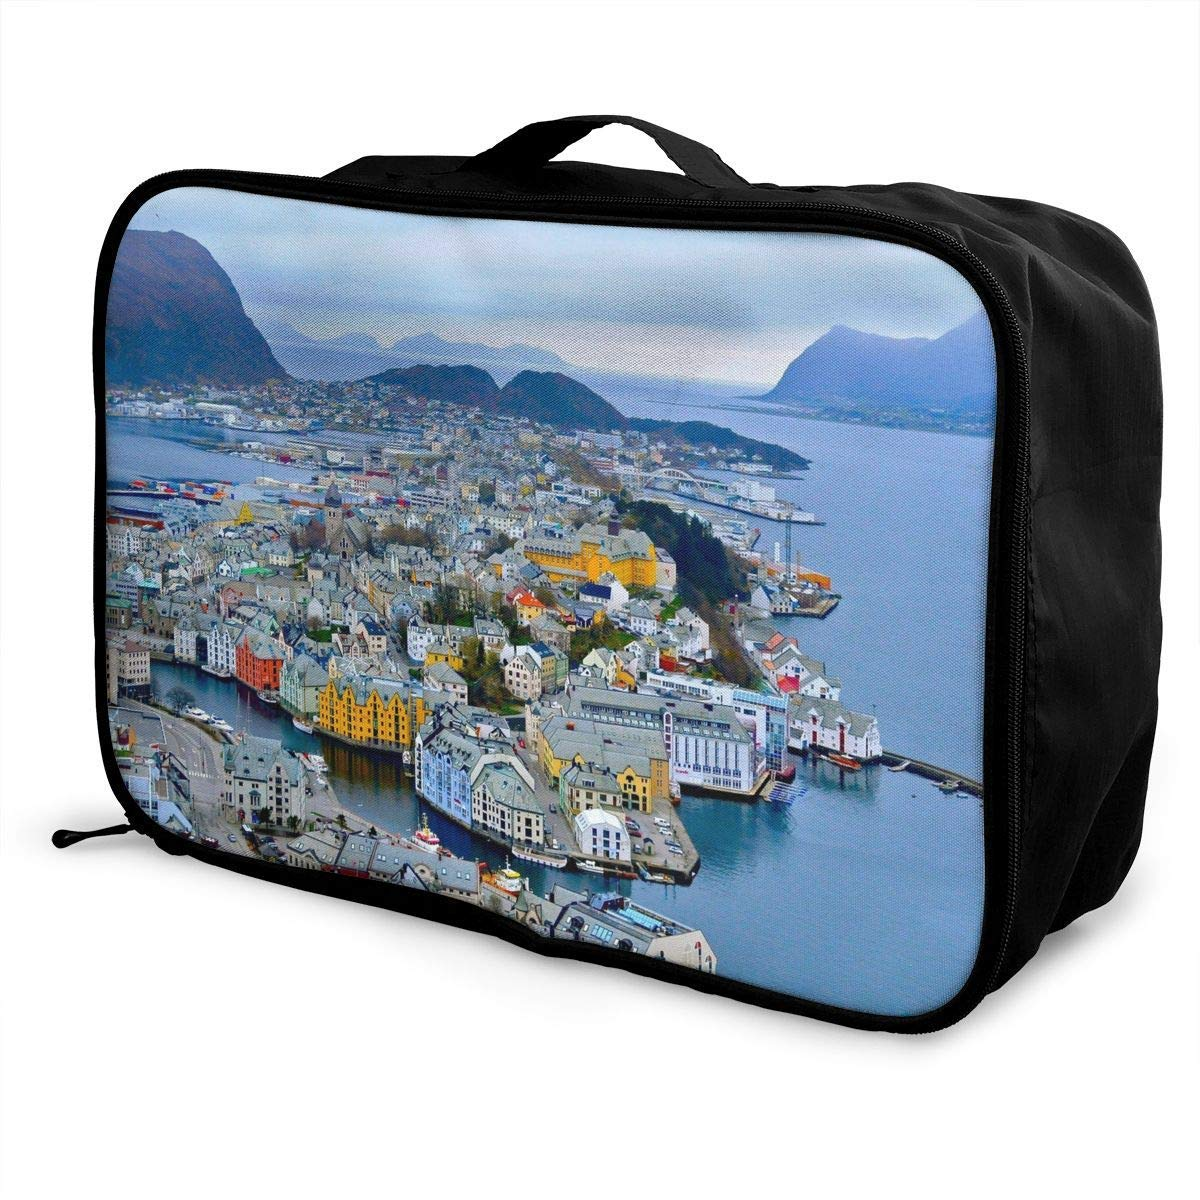 Portable Luggage Duffel Bag Alesund Scenery Travel Bags Carry-on In Trolley Handle